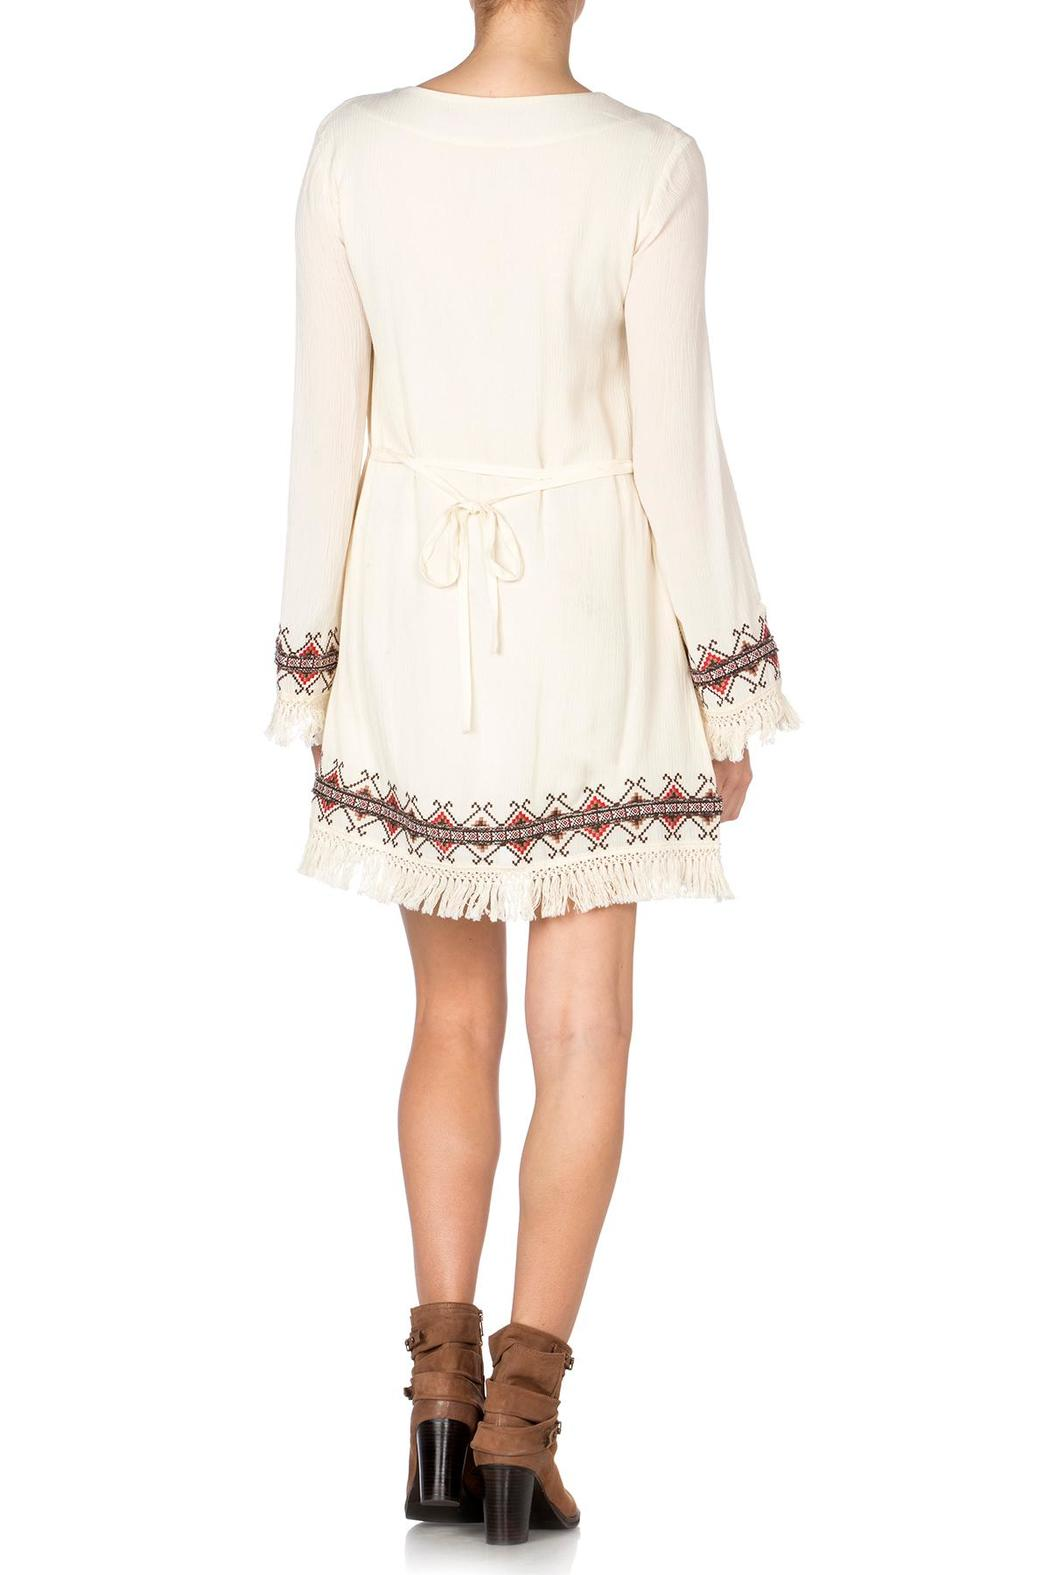 c1728d920c8e Miss Me Embroidered Fringe Dress from New York by Luna — Shoptiques